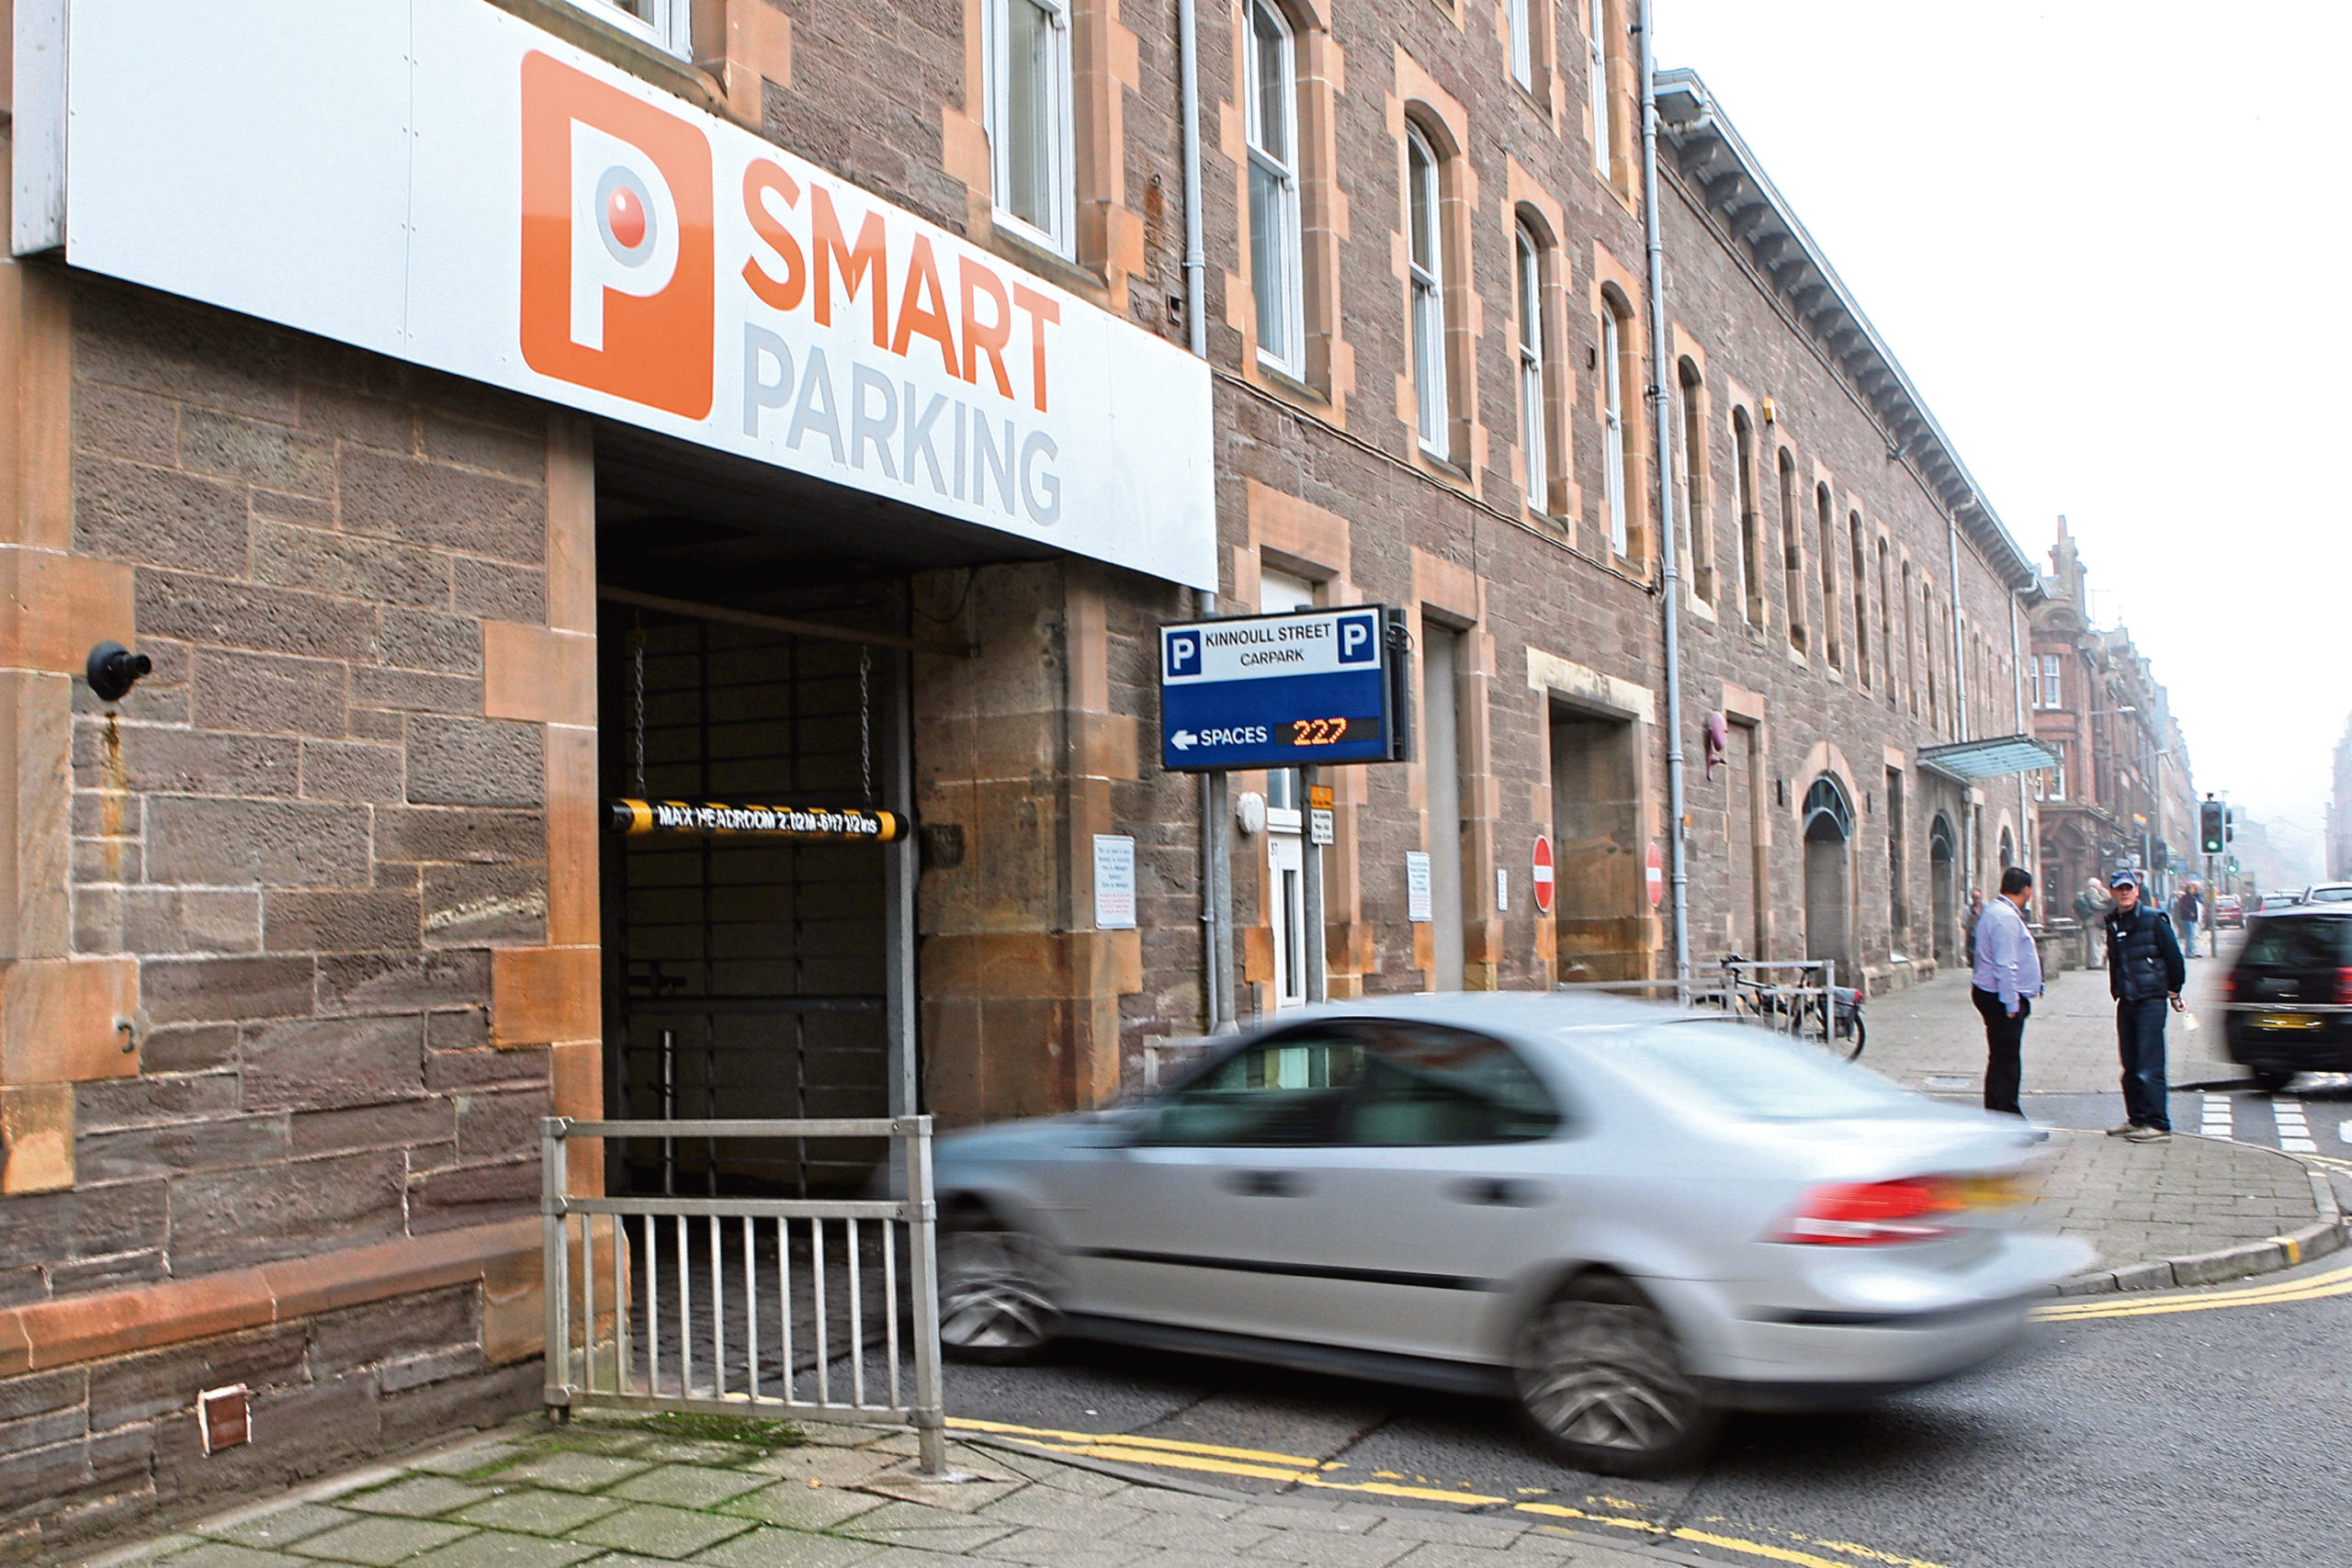 Kris Miller, Courier, 03/11/15. Picture today shows Smart Parking car park on Kinnoull Street, Perth for report on the controversial company.